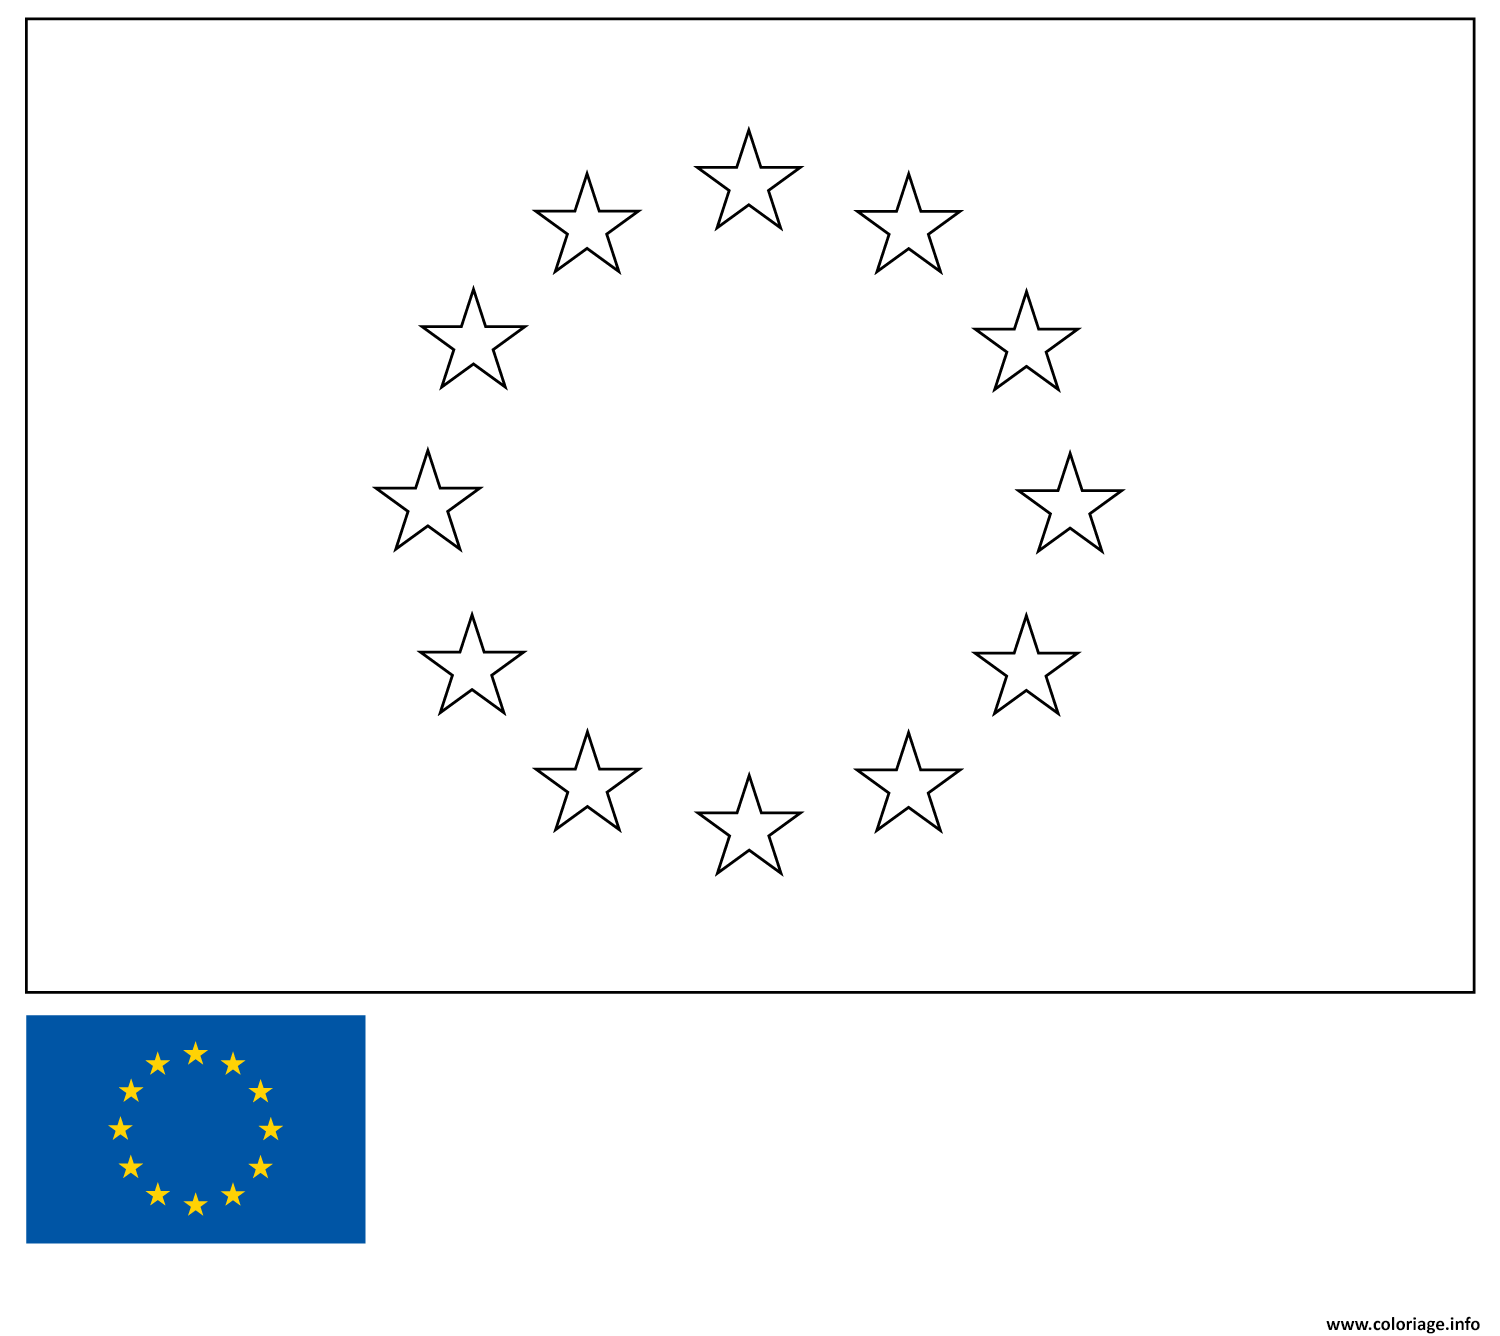 Dessin drapeau union europeenne europe european union flag Coloriage Gratuit à Imprimer